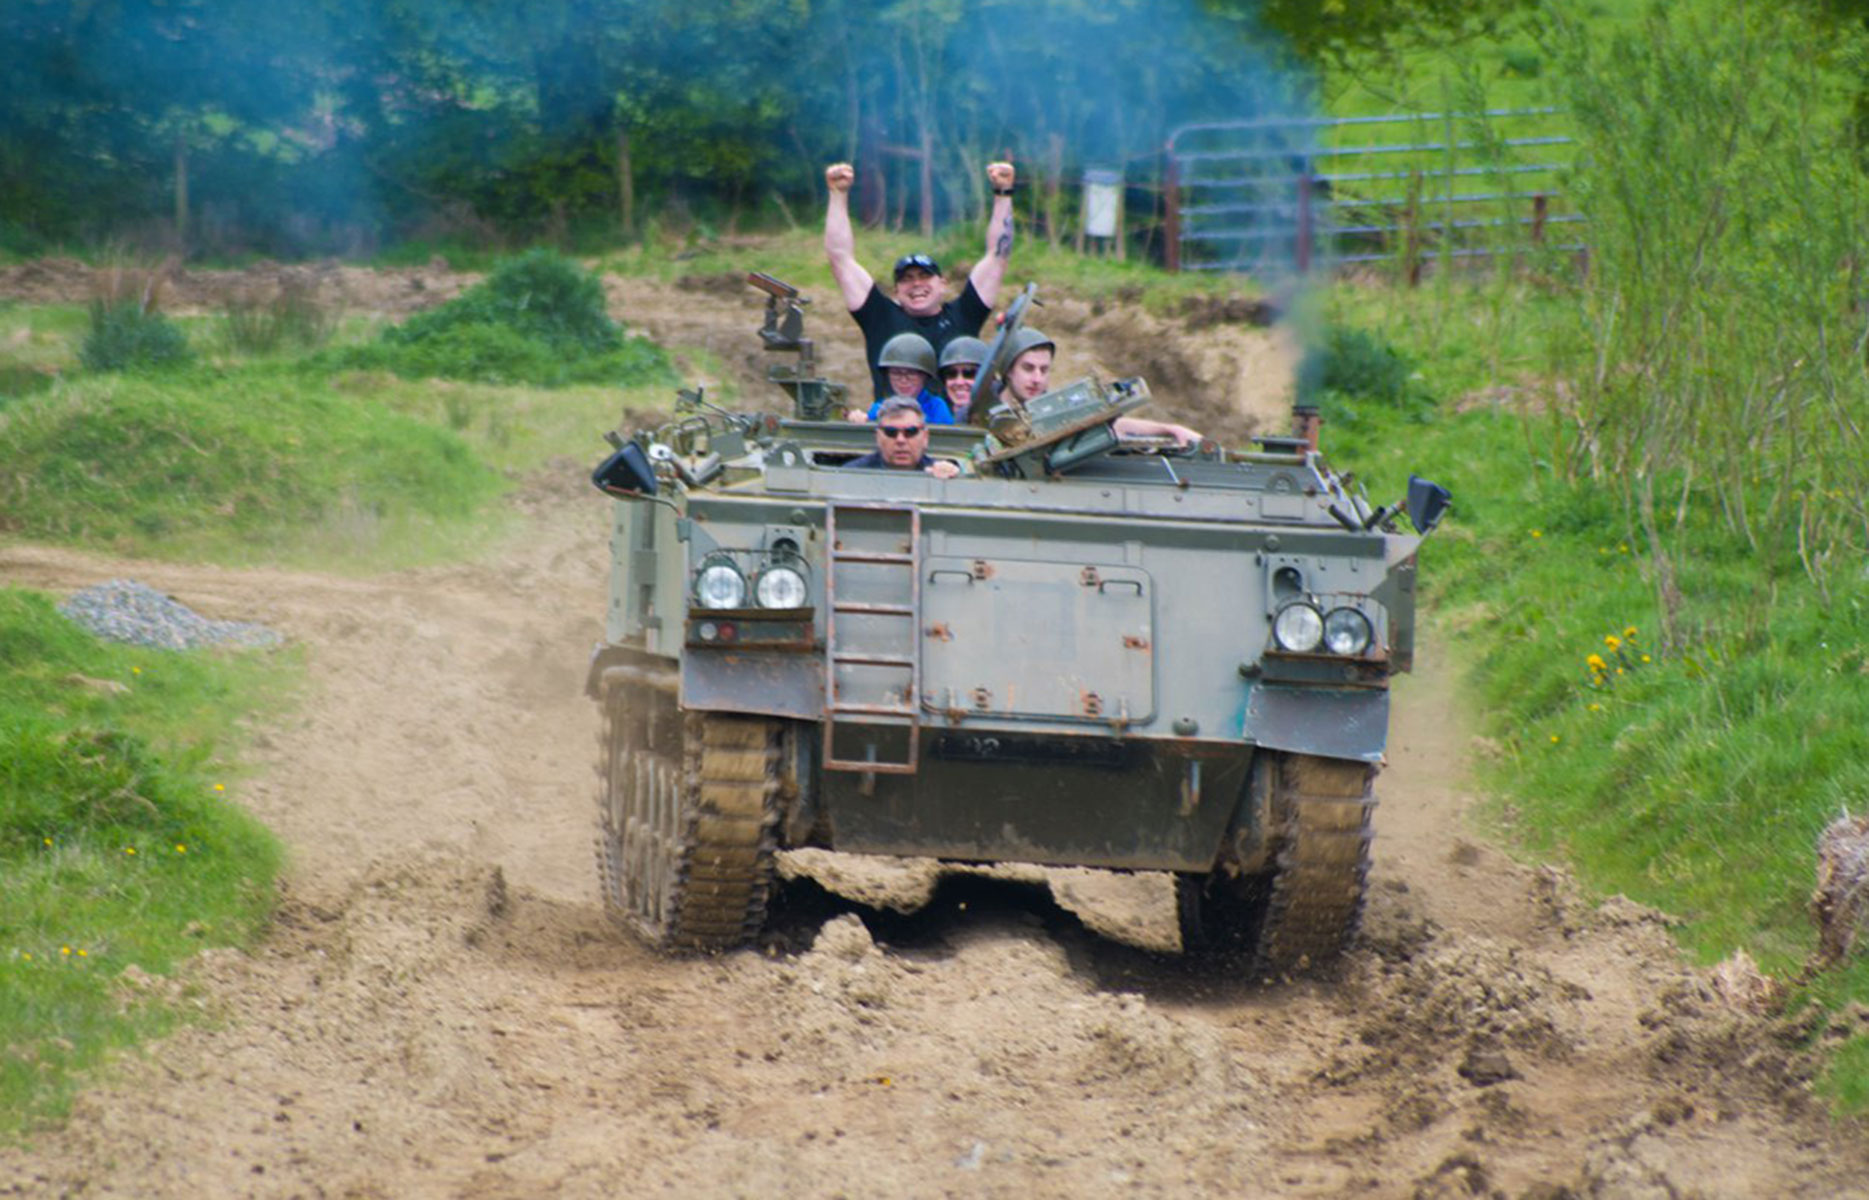 Ride in a tank at the Irish Military museum, Boyne Valley, Ireland